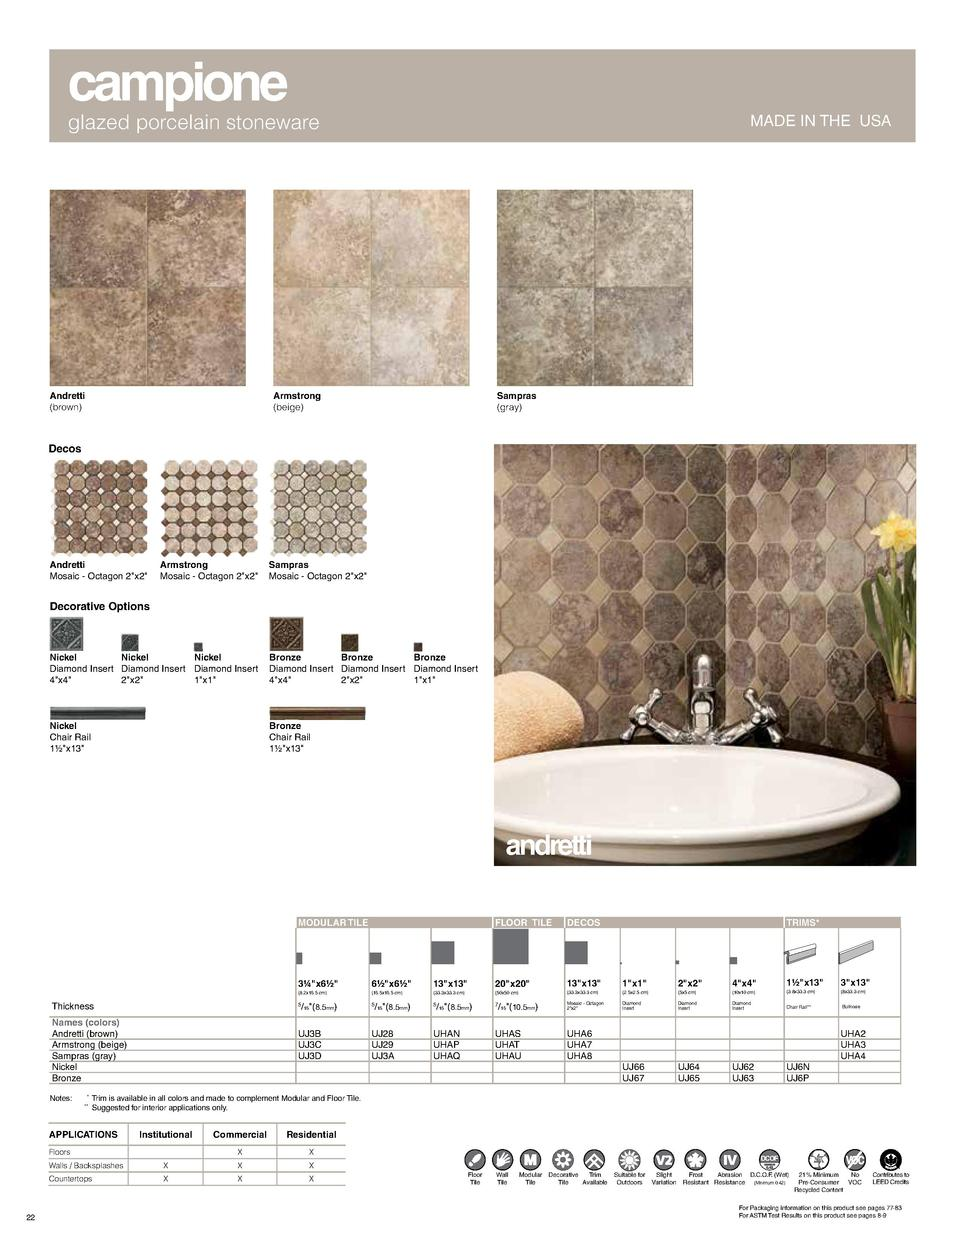 campione  glazed porcelain stoneware  Andretti  brown   MADE IN THE USA  Armstrong  beige   Sampras  gray   Decos  Andrett...